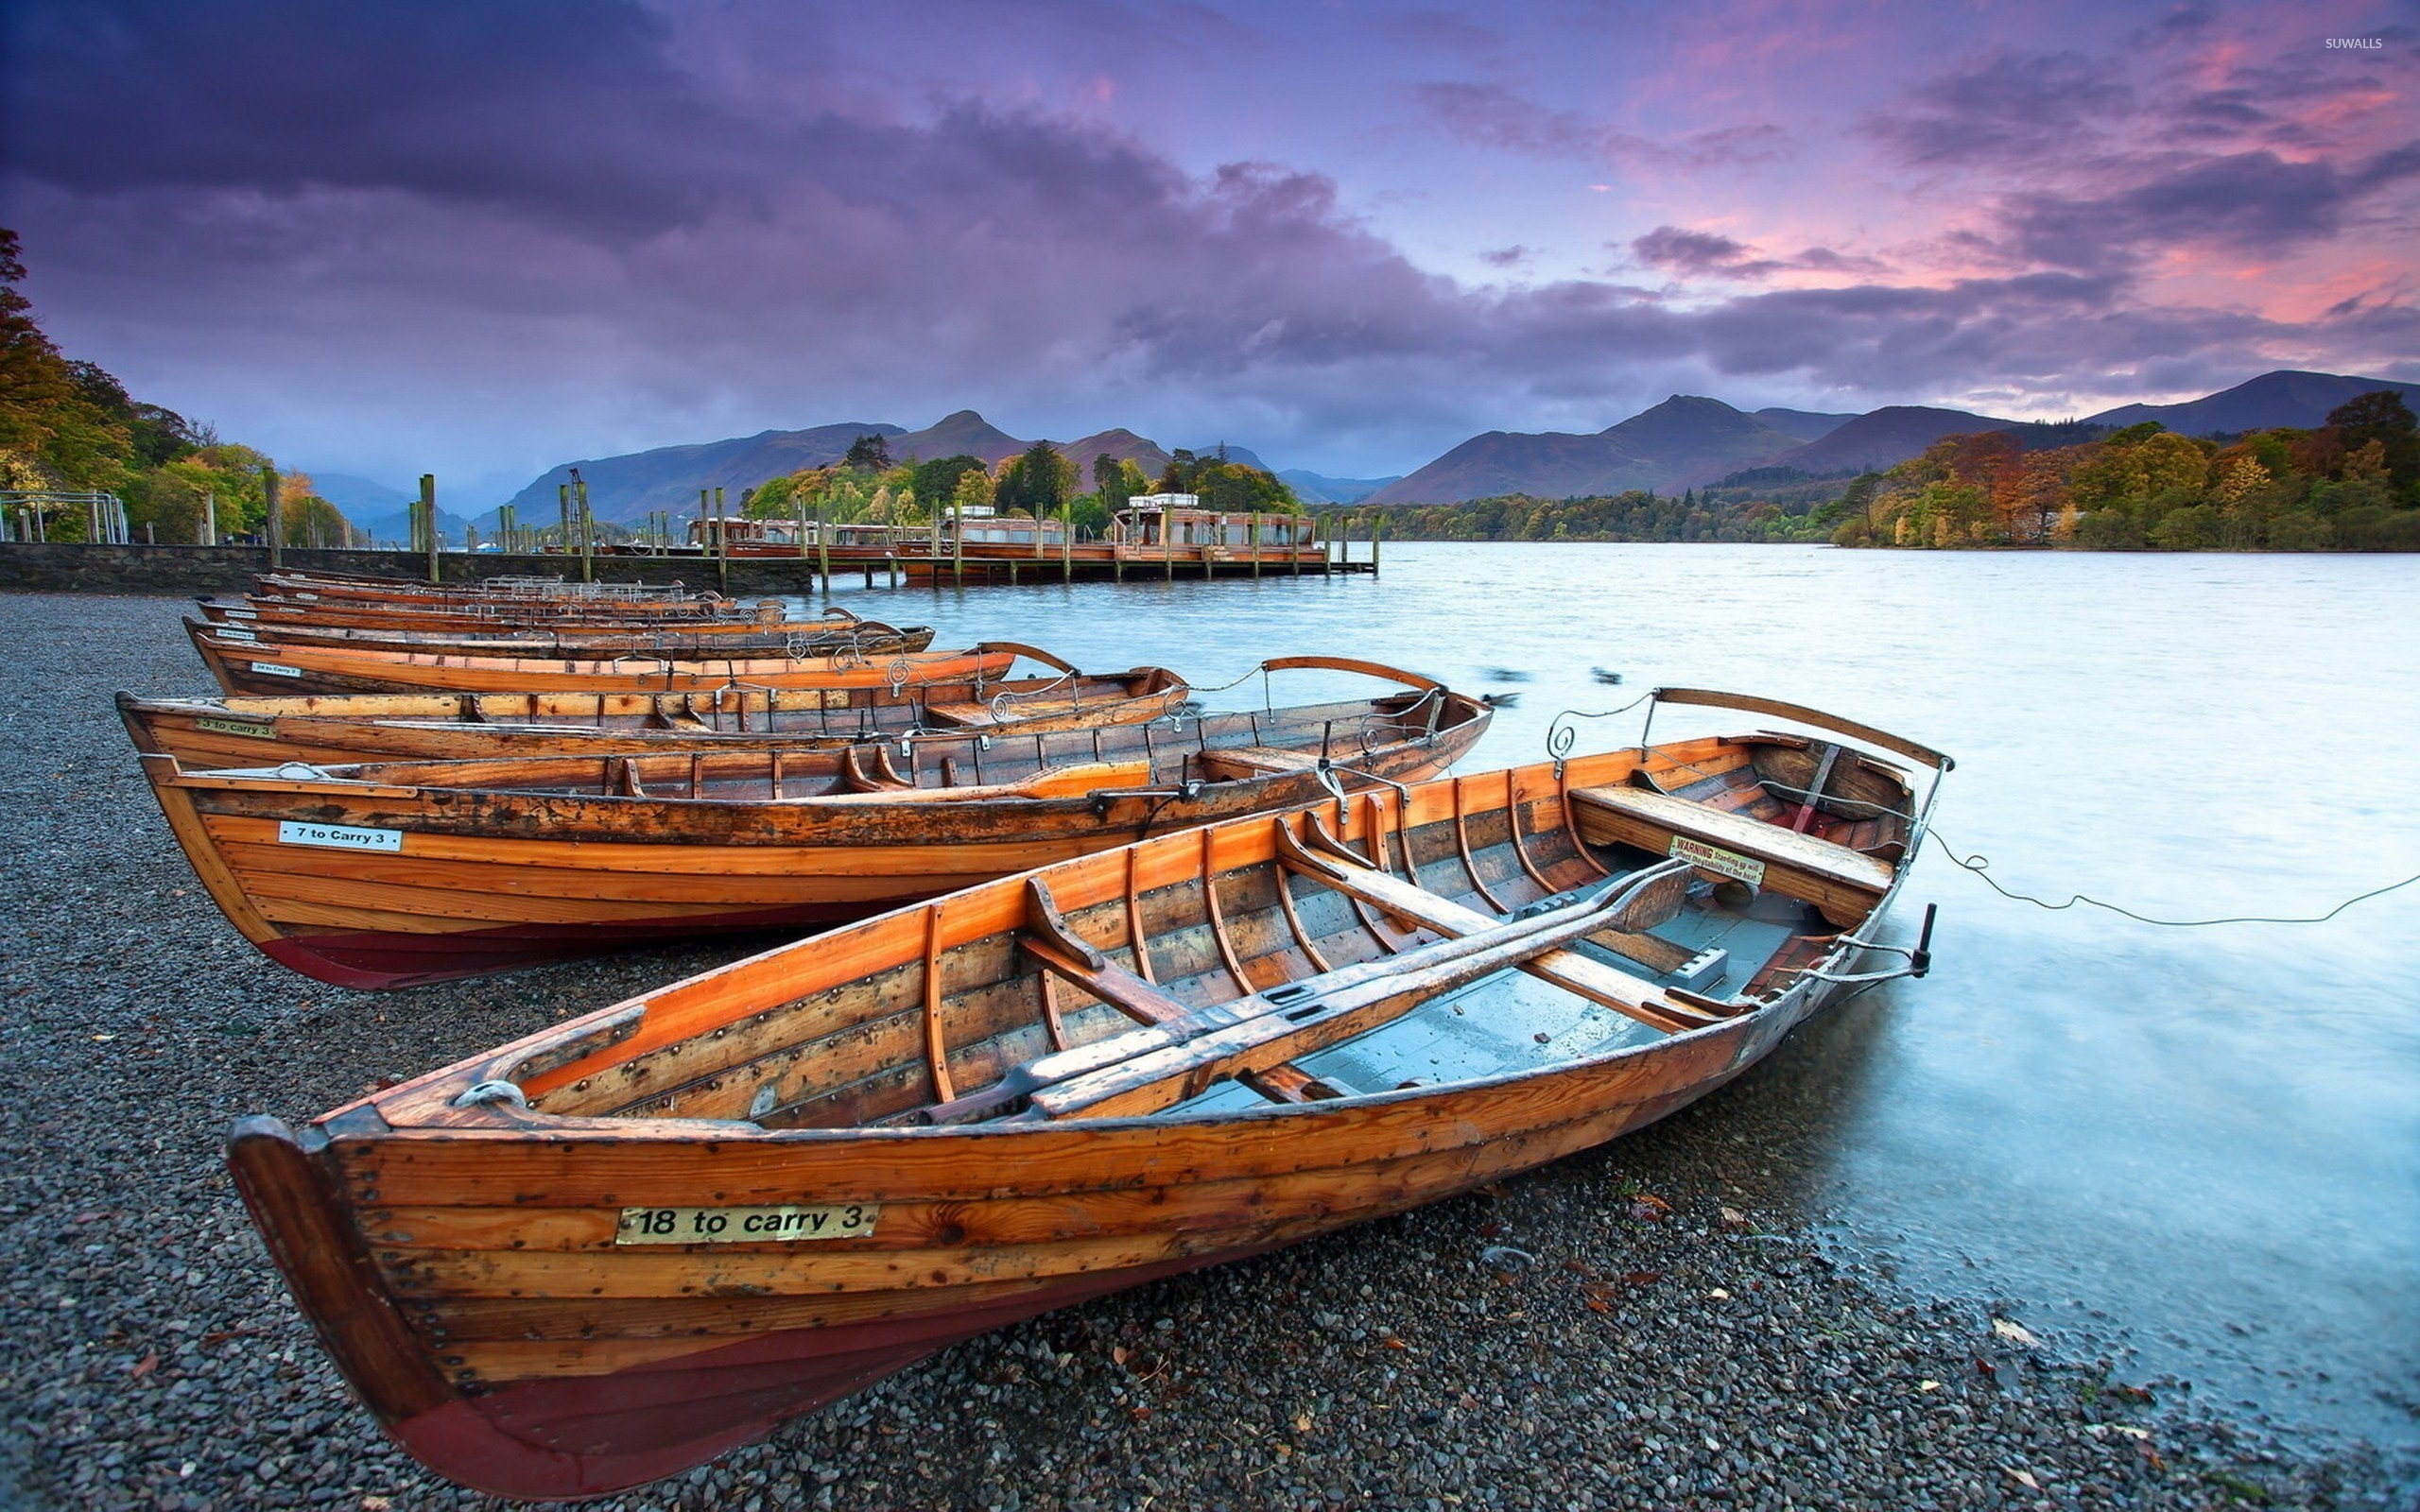 Res: 2560x1600, Wooden boats on the pebble beach of the river wallpaper